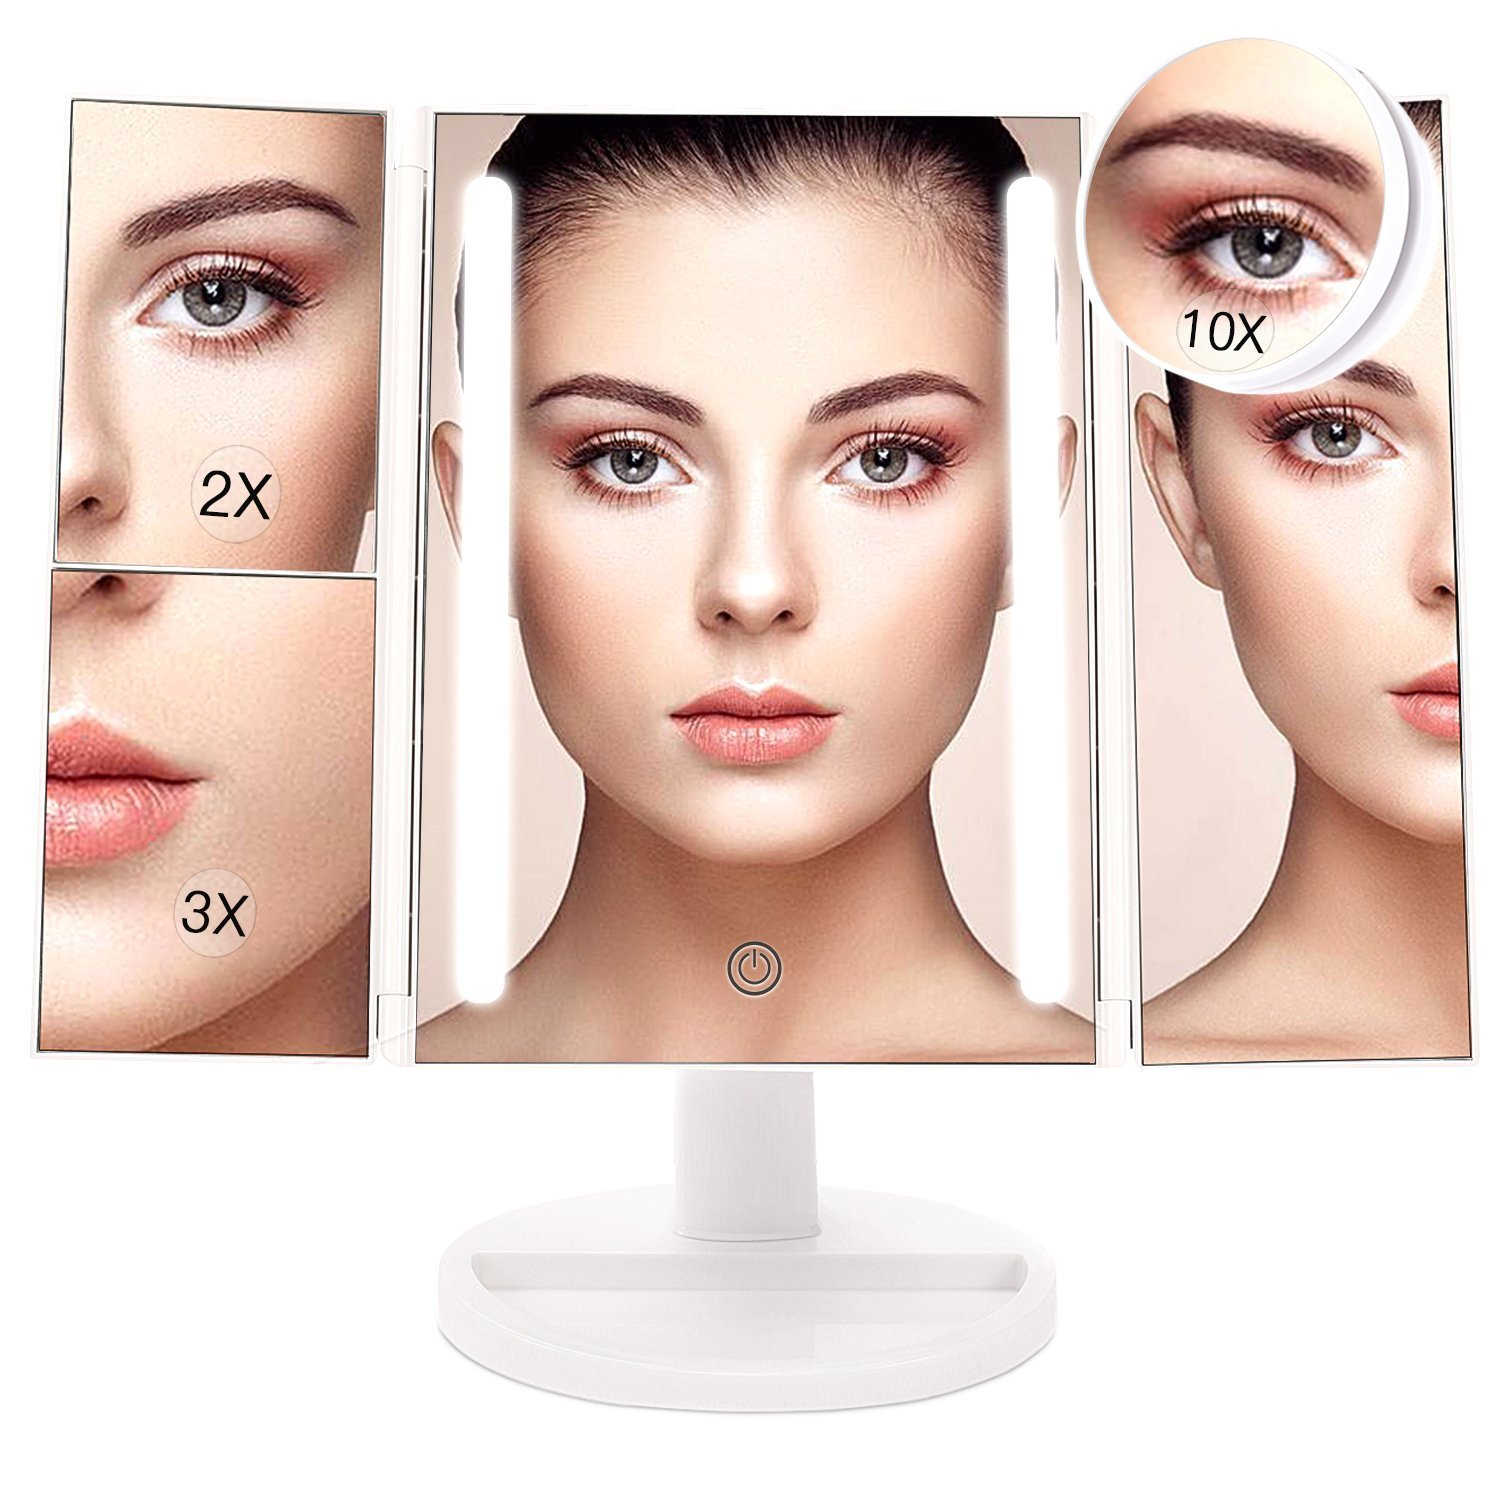 BESTOPE Makeup Vanity Mirror with 1X, 2X, 3X, 10X Magnification,Trifold Mirror with 24 LED Lights, Touch Screen, 180 °Adjustable Rotation, Dual power supply Countertop Cosmetic Makeup Mirror 180 °Adjustable Rotation